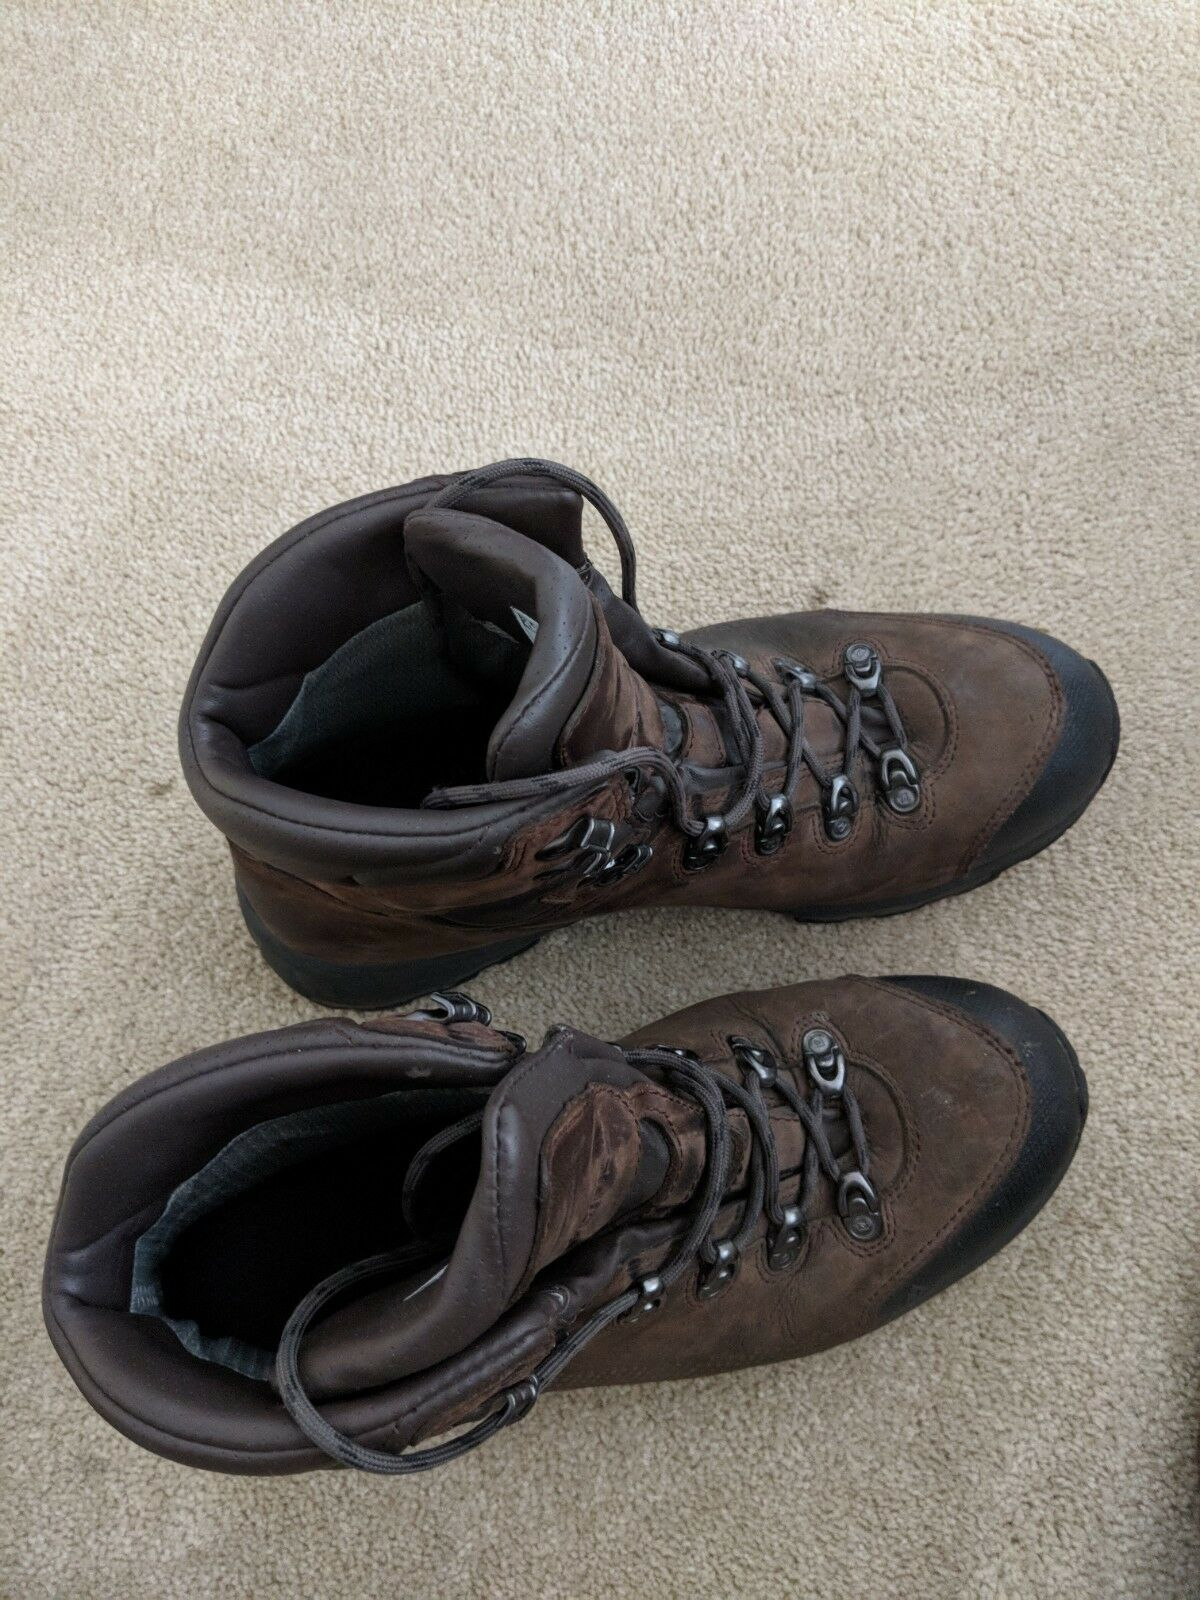 Hiking Boots, Men's, Brown Leather, Vasque, size 10.5